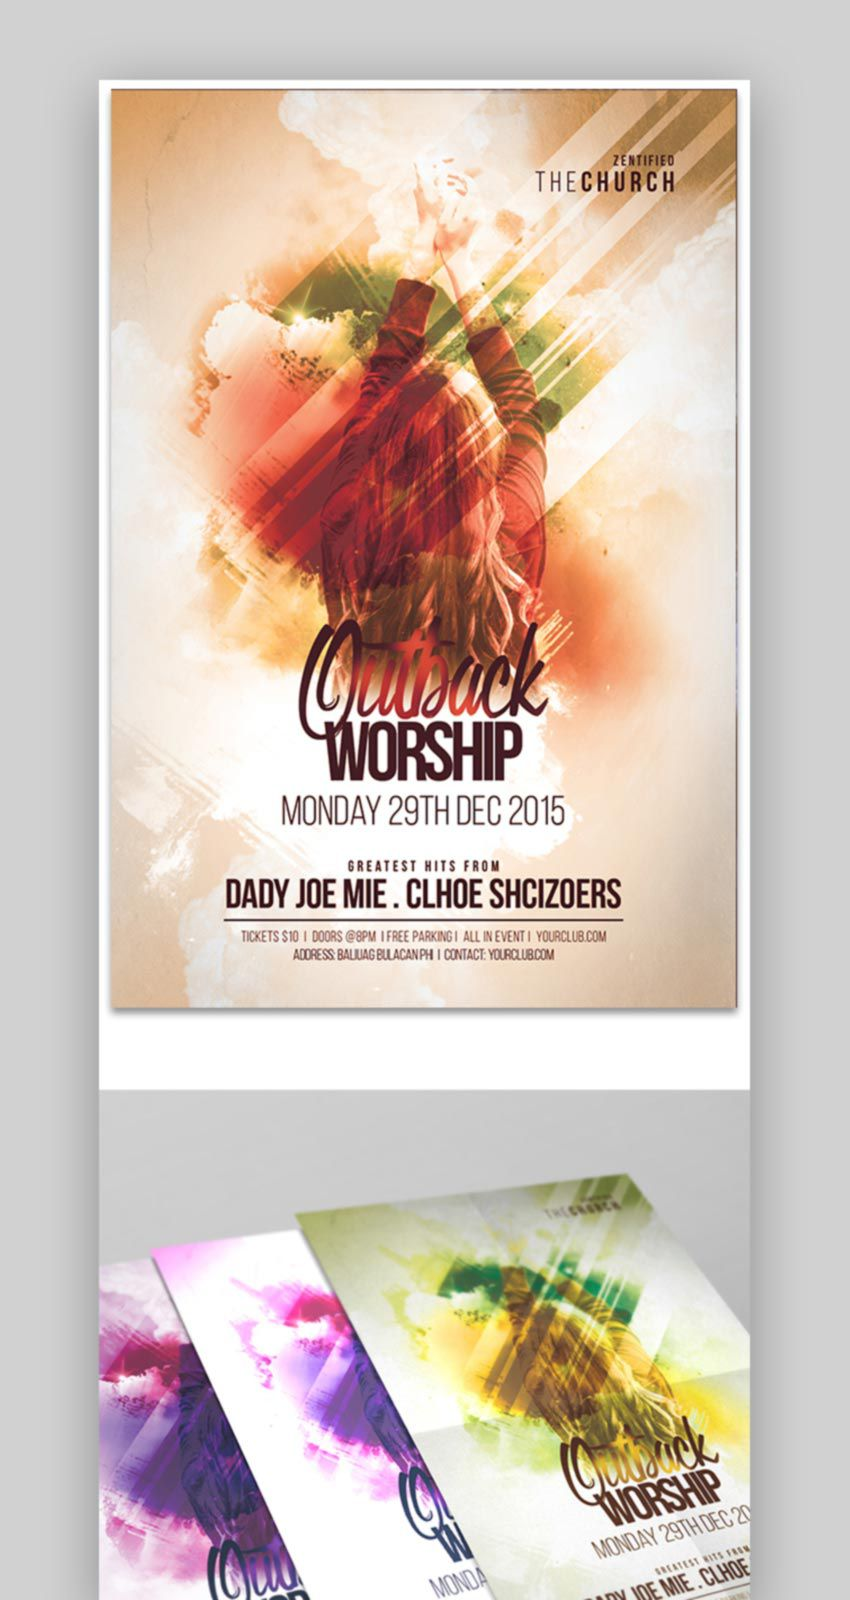 009 Surprising Church Flyer Template Free Download Highest Quality  Event PsdFull